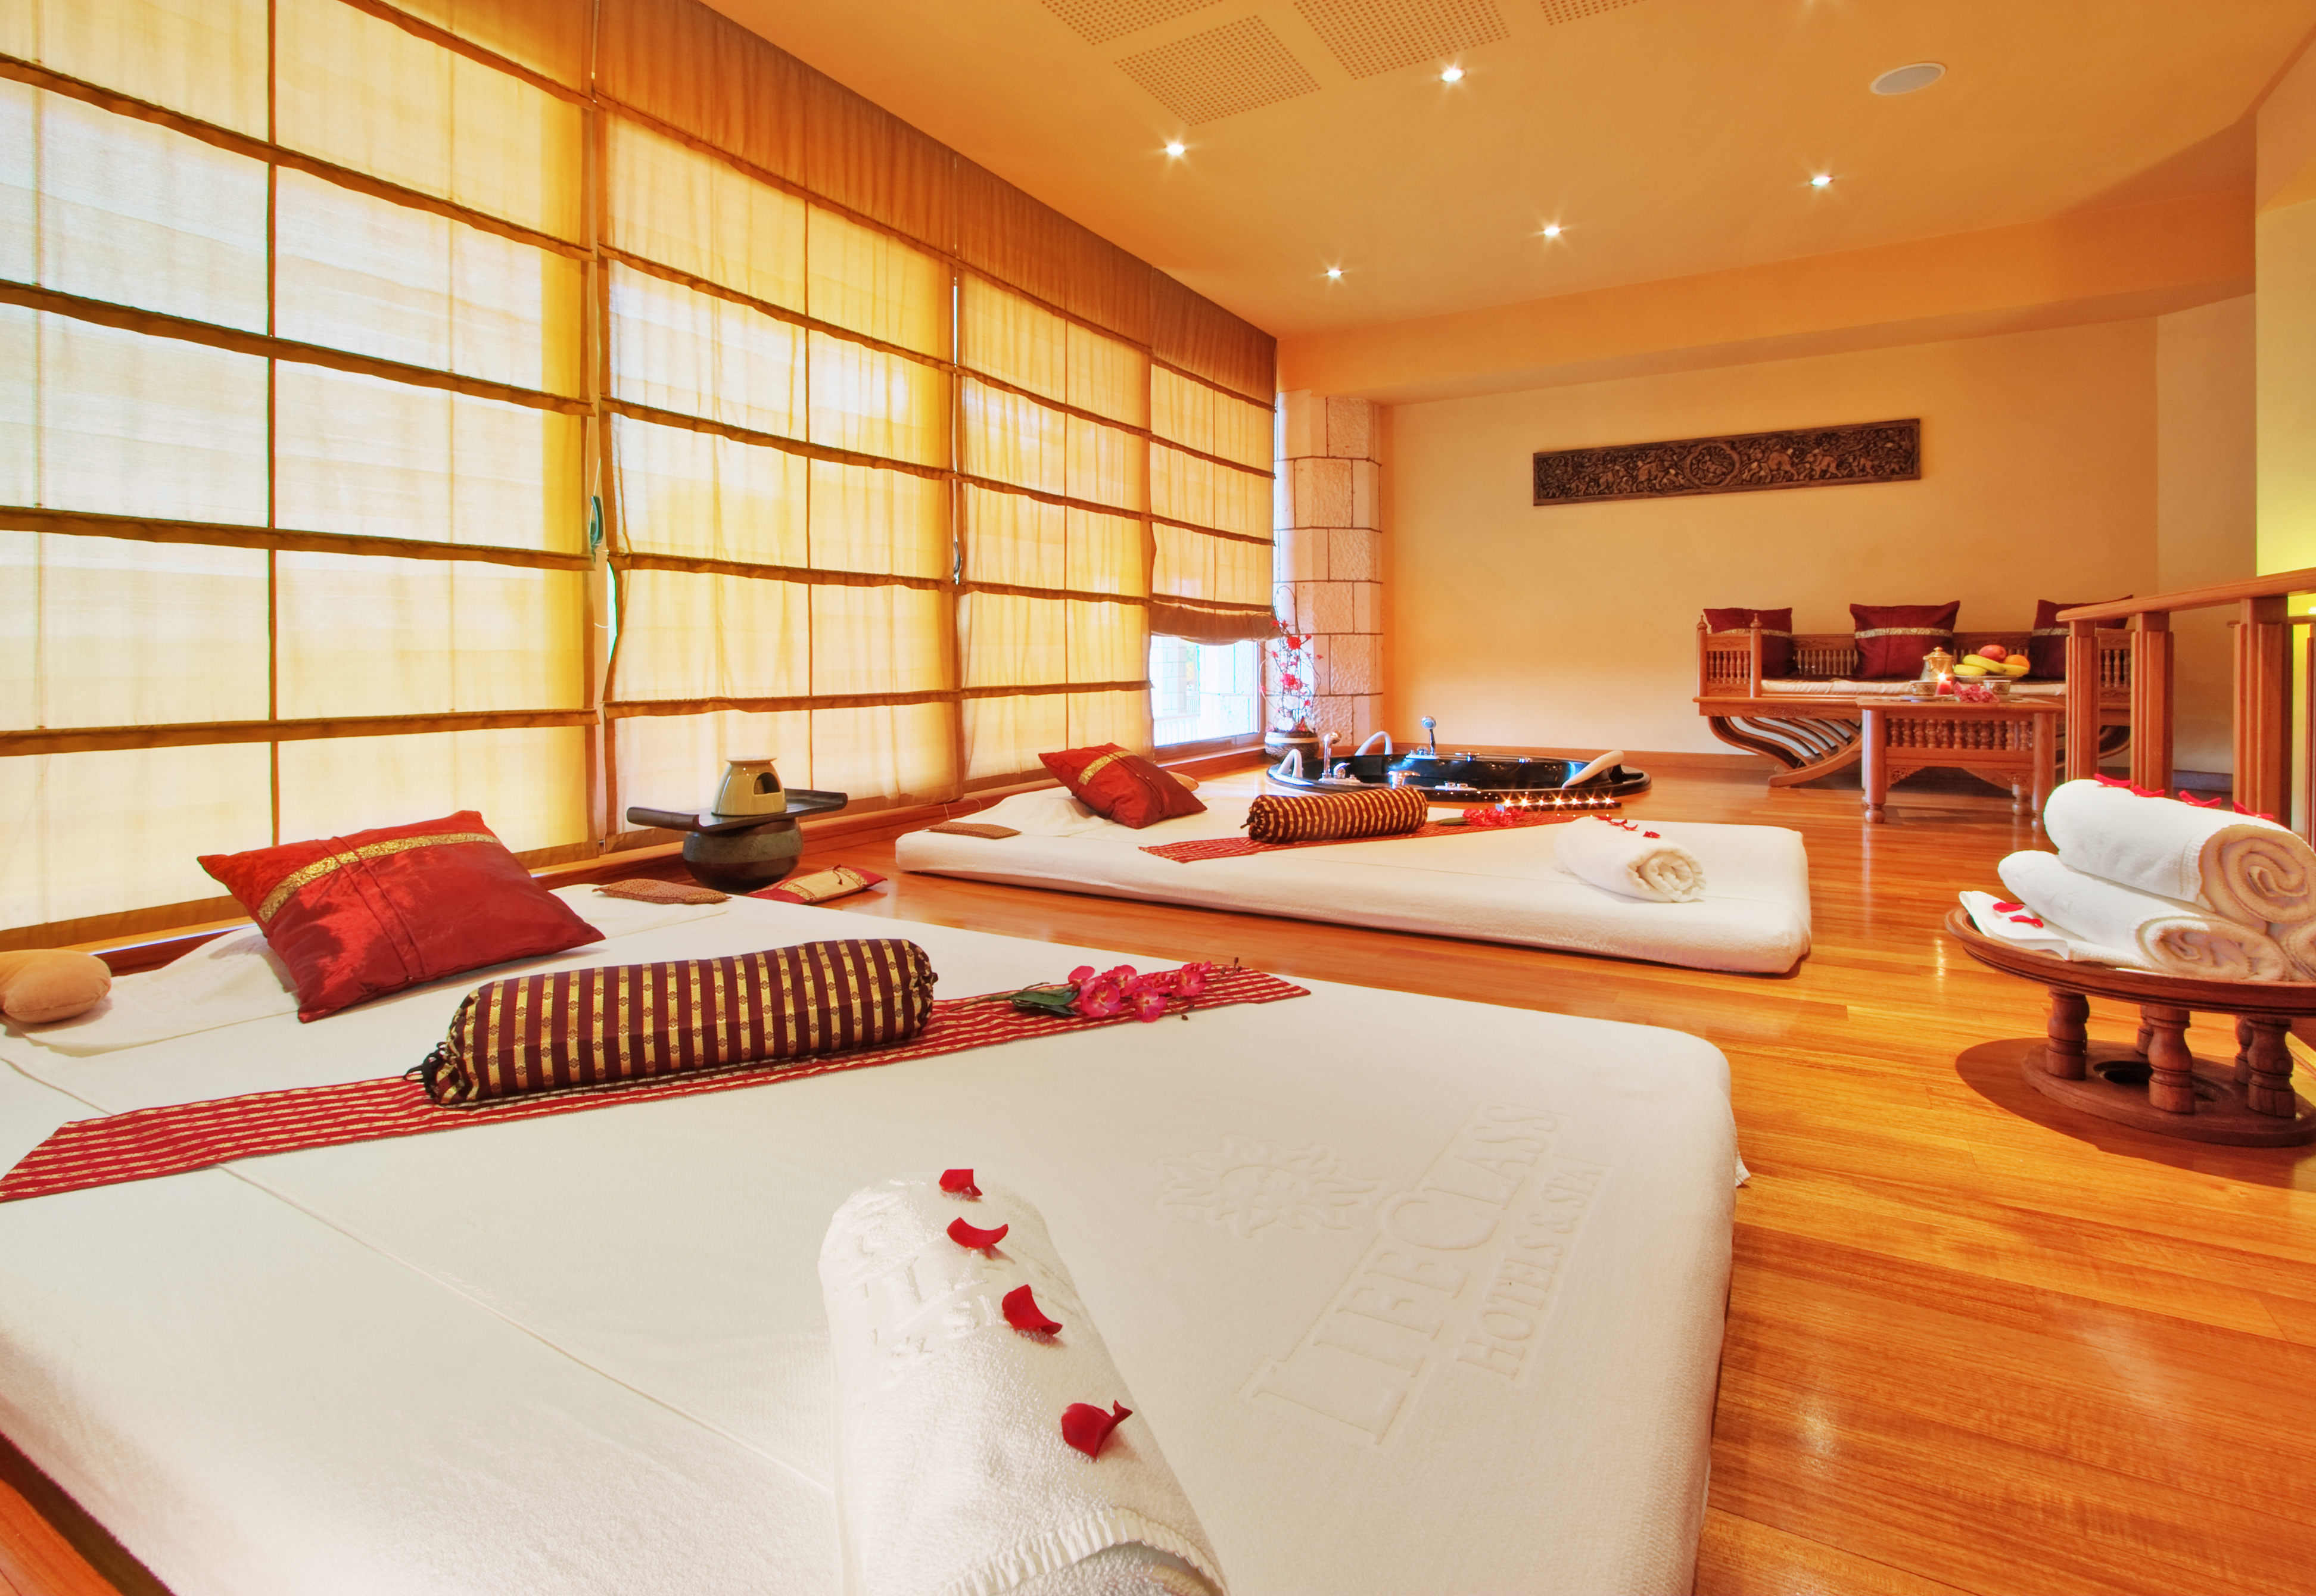 WAI THAI VIP massage room